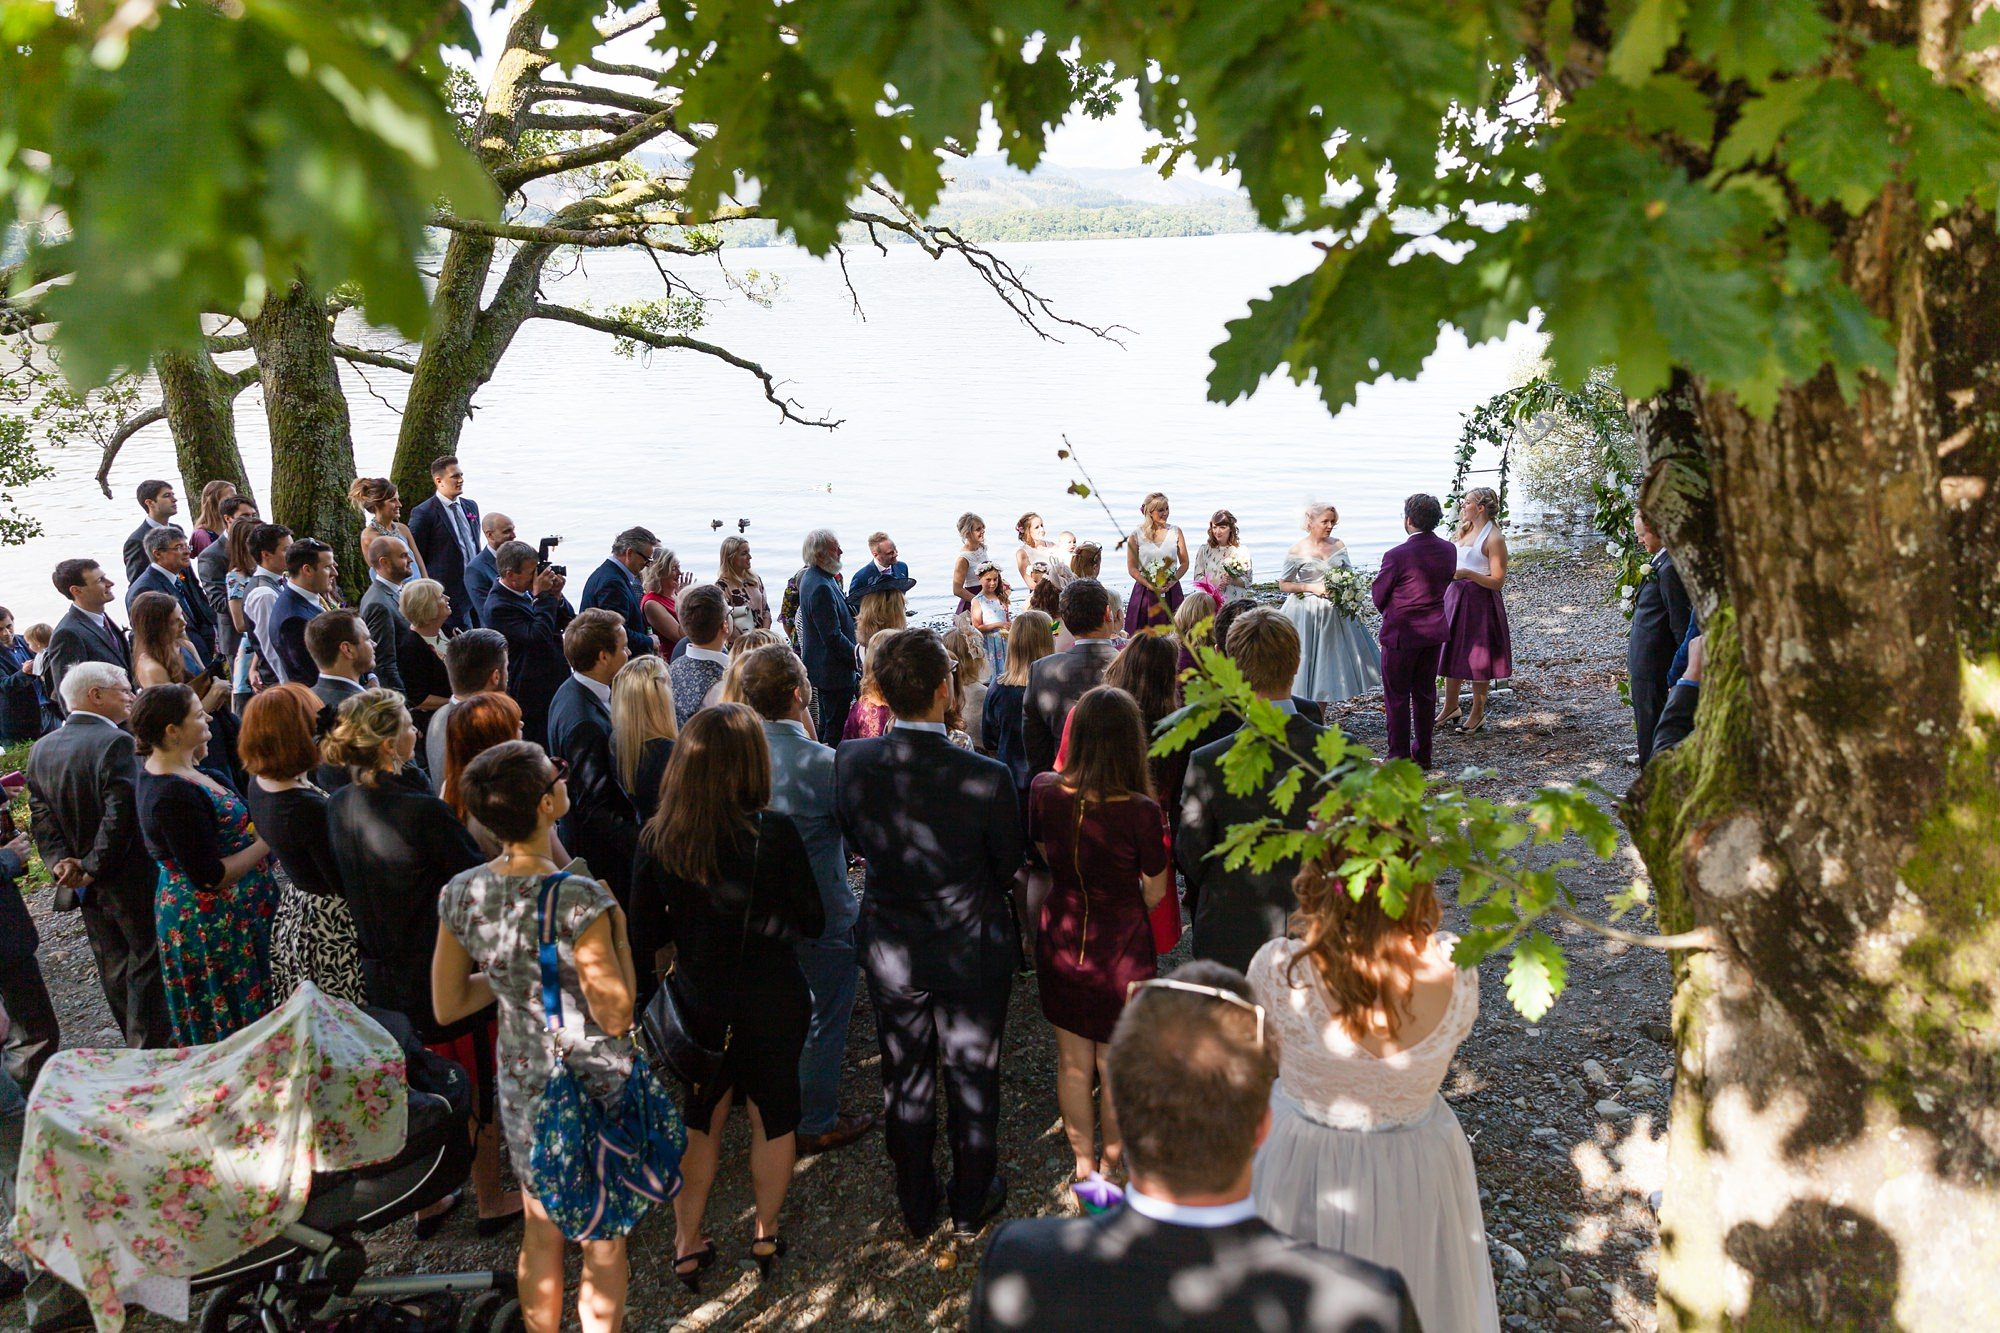 Wedding ceremony by Derwentwater lake